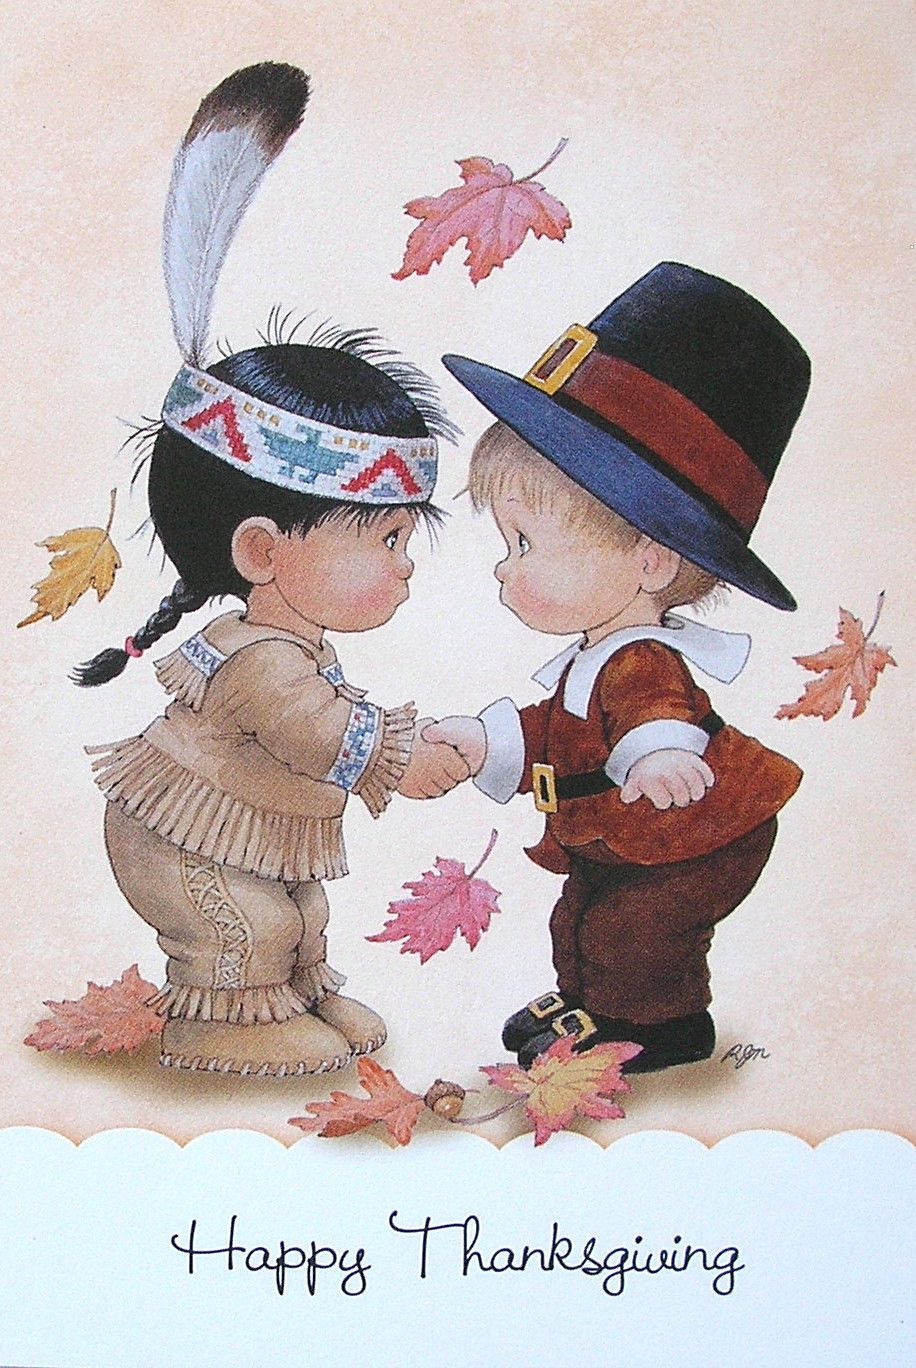 Morehead child pilgrim native american indian thanksgiving leaves morehead child pilgrim native american indian thanksgiving leaves greeting card ebay m4hsunfo